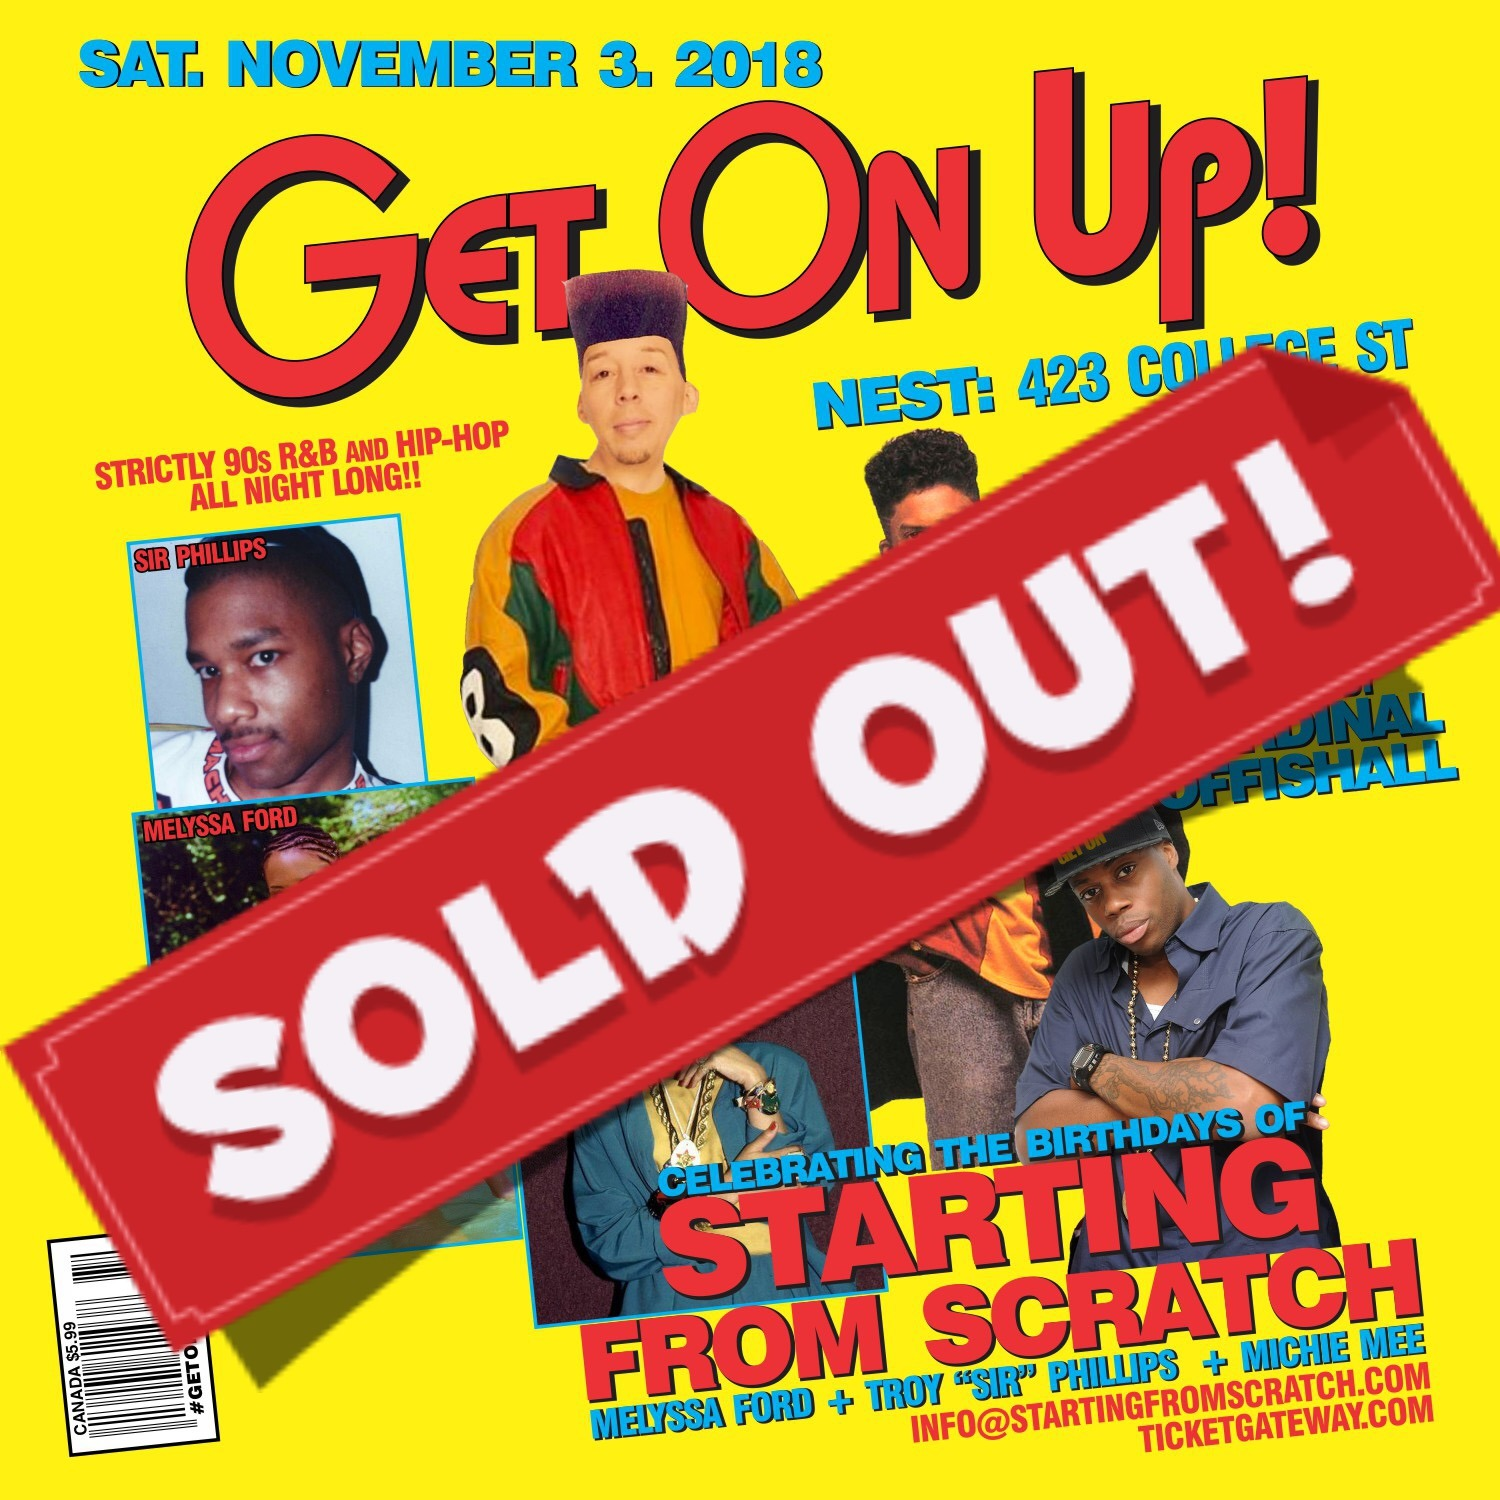 GET ON UP - 90s R&B/Hip Hop - Starting from Scratch Bday Feat Special Ed